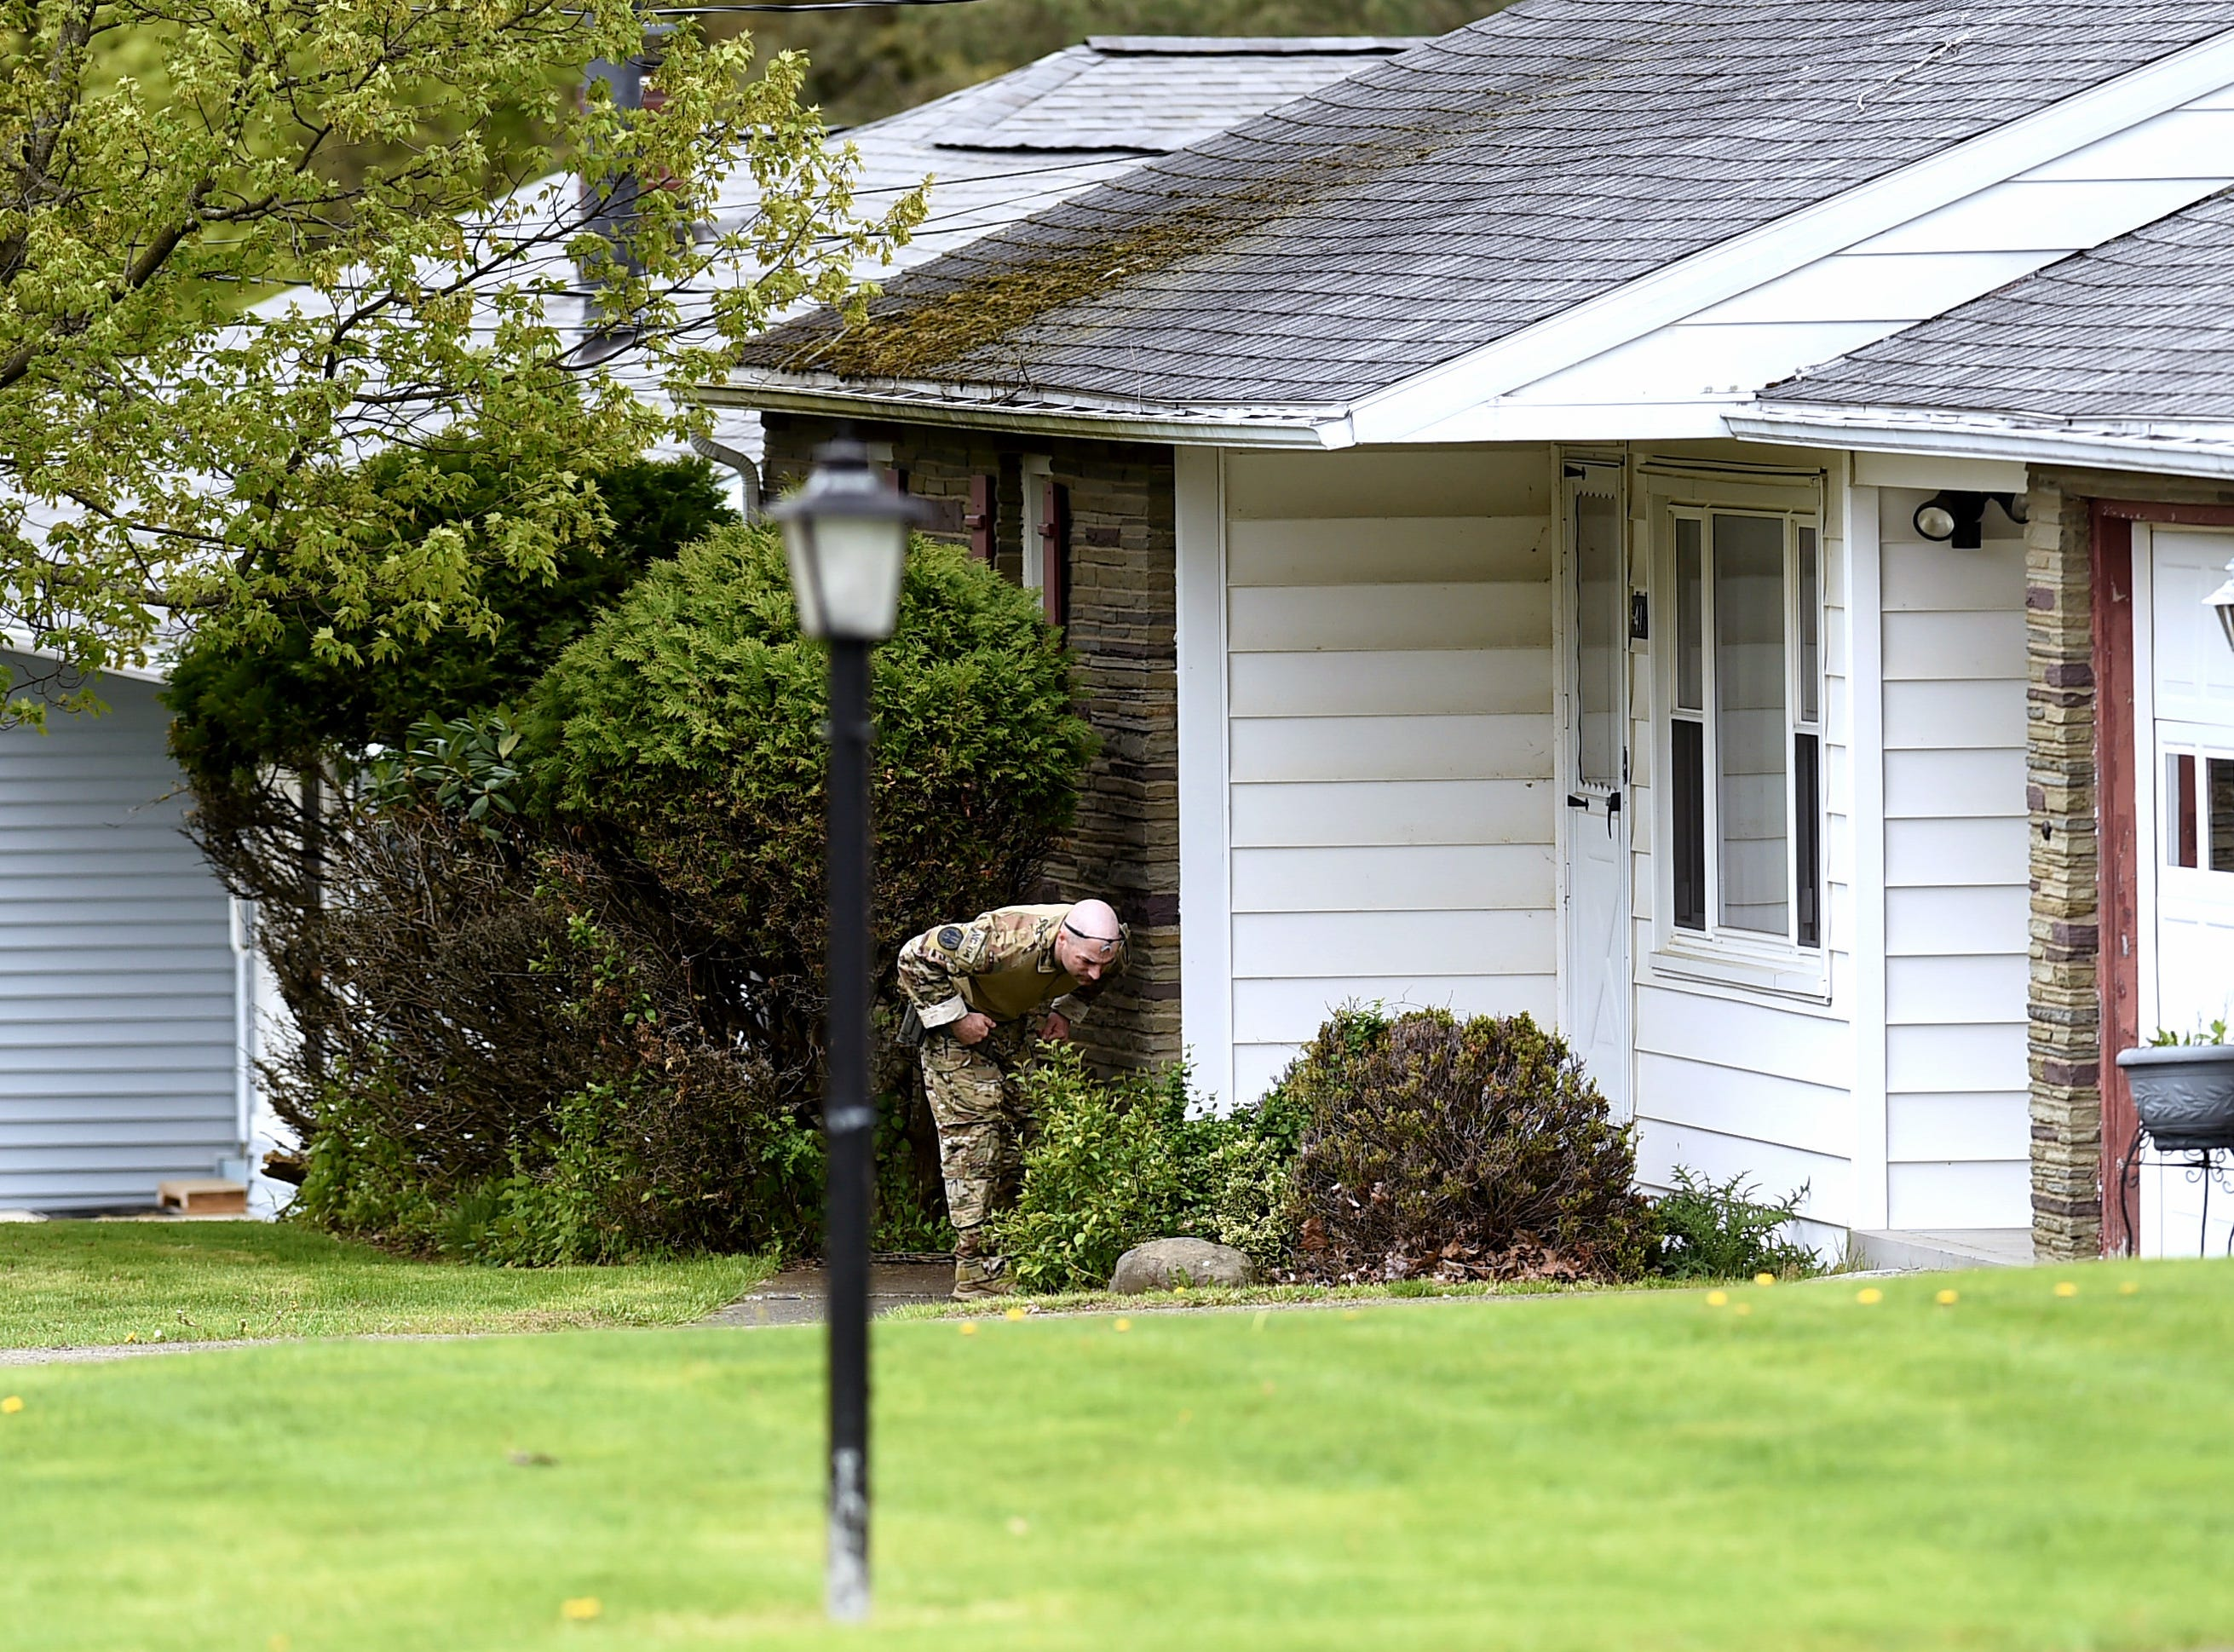 Investigators search the neighborhood near the scene of Apalachin home invasion and homicide which occurred in the early morning hours of Thursday, May 9, 2019.